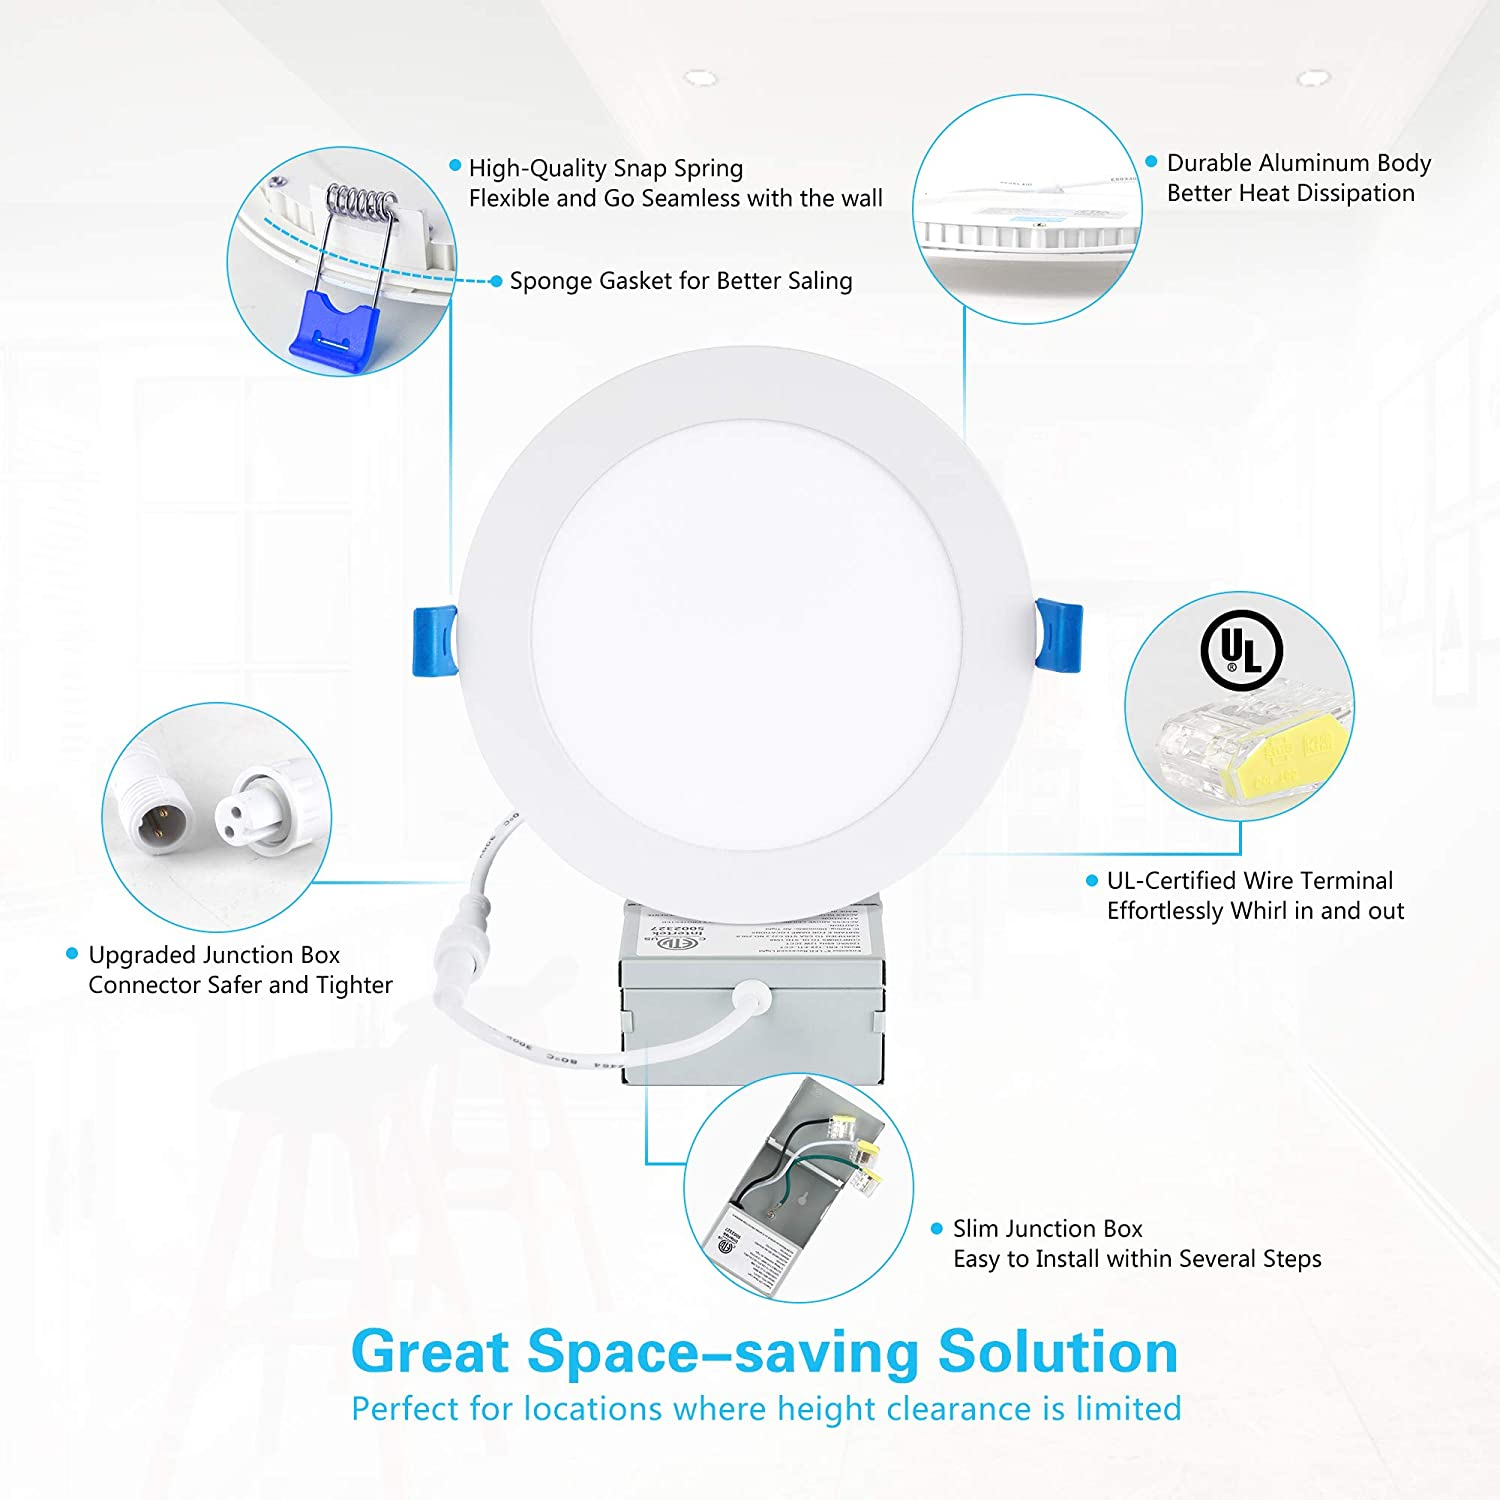 1050LM High Brightness 2700K Soft White Dimmable Can-Killer Downlight 12W 110W Eqv Ensenior 12 Pack 6 Inch Ultra-Thin LED Recessed Ceiling Light with Junction Box ETL and Energy Star Certified/…